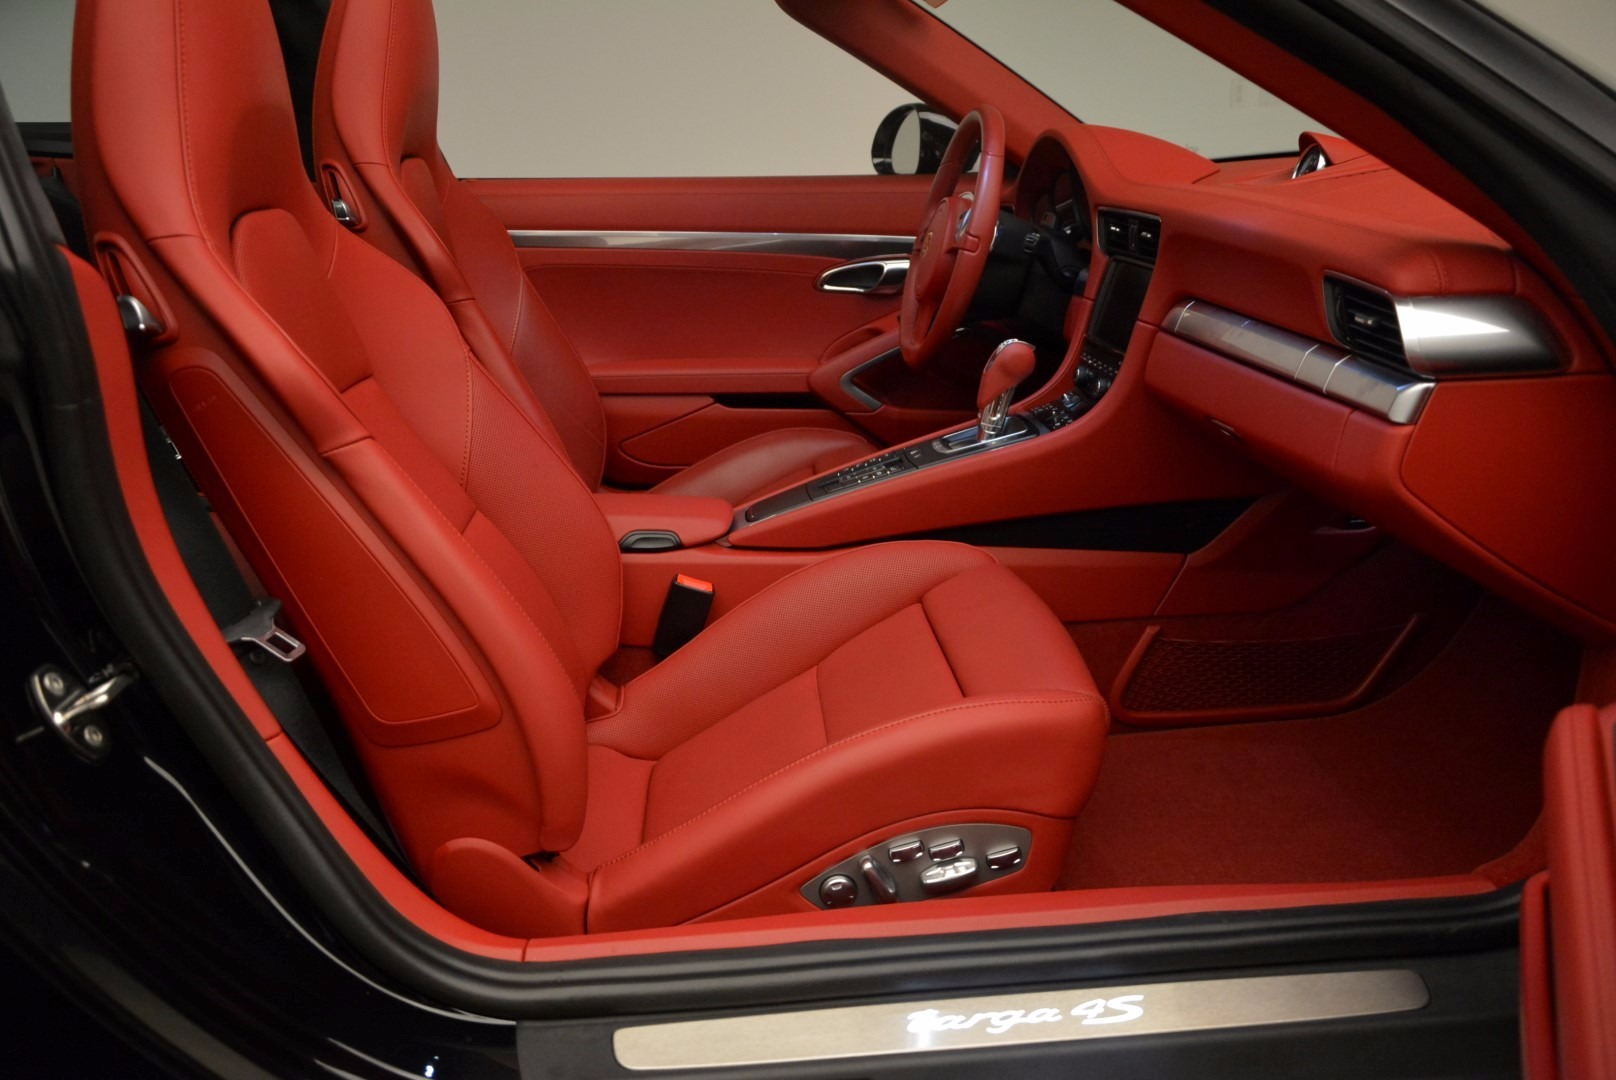 Used 2015 Porsche 911 Targa 4S For Sale In Greenwich, CT 1476_p26